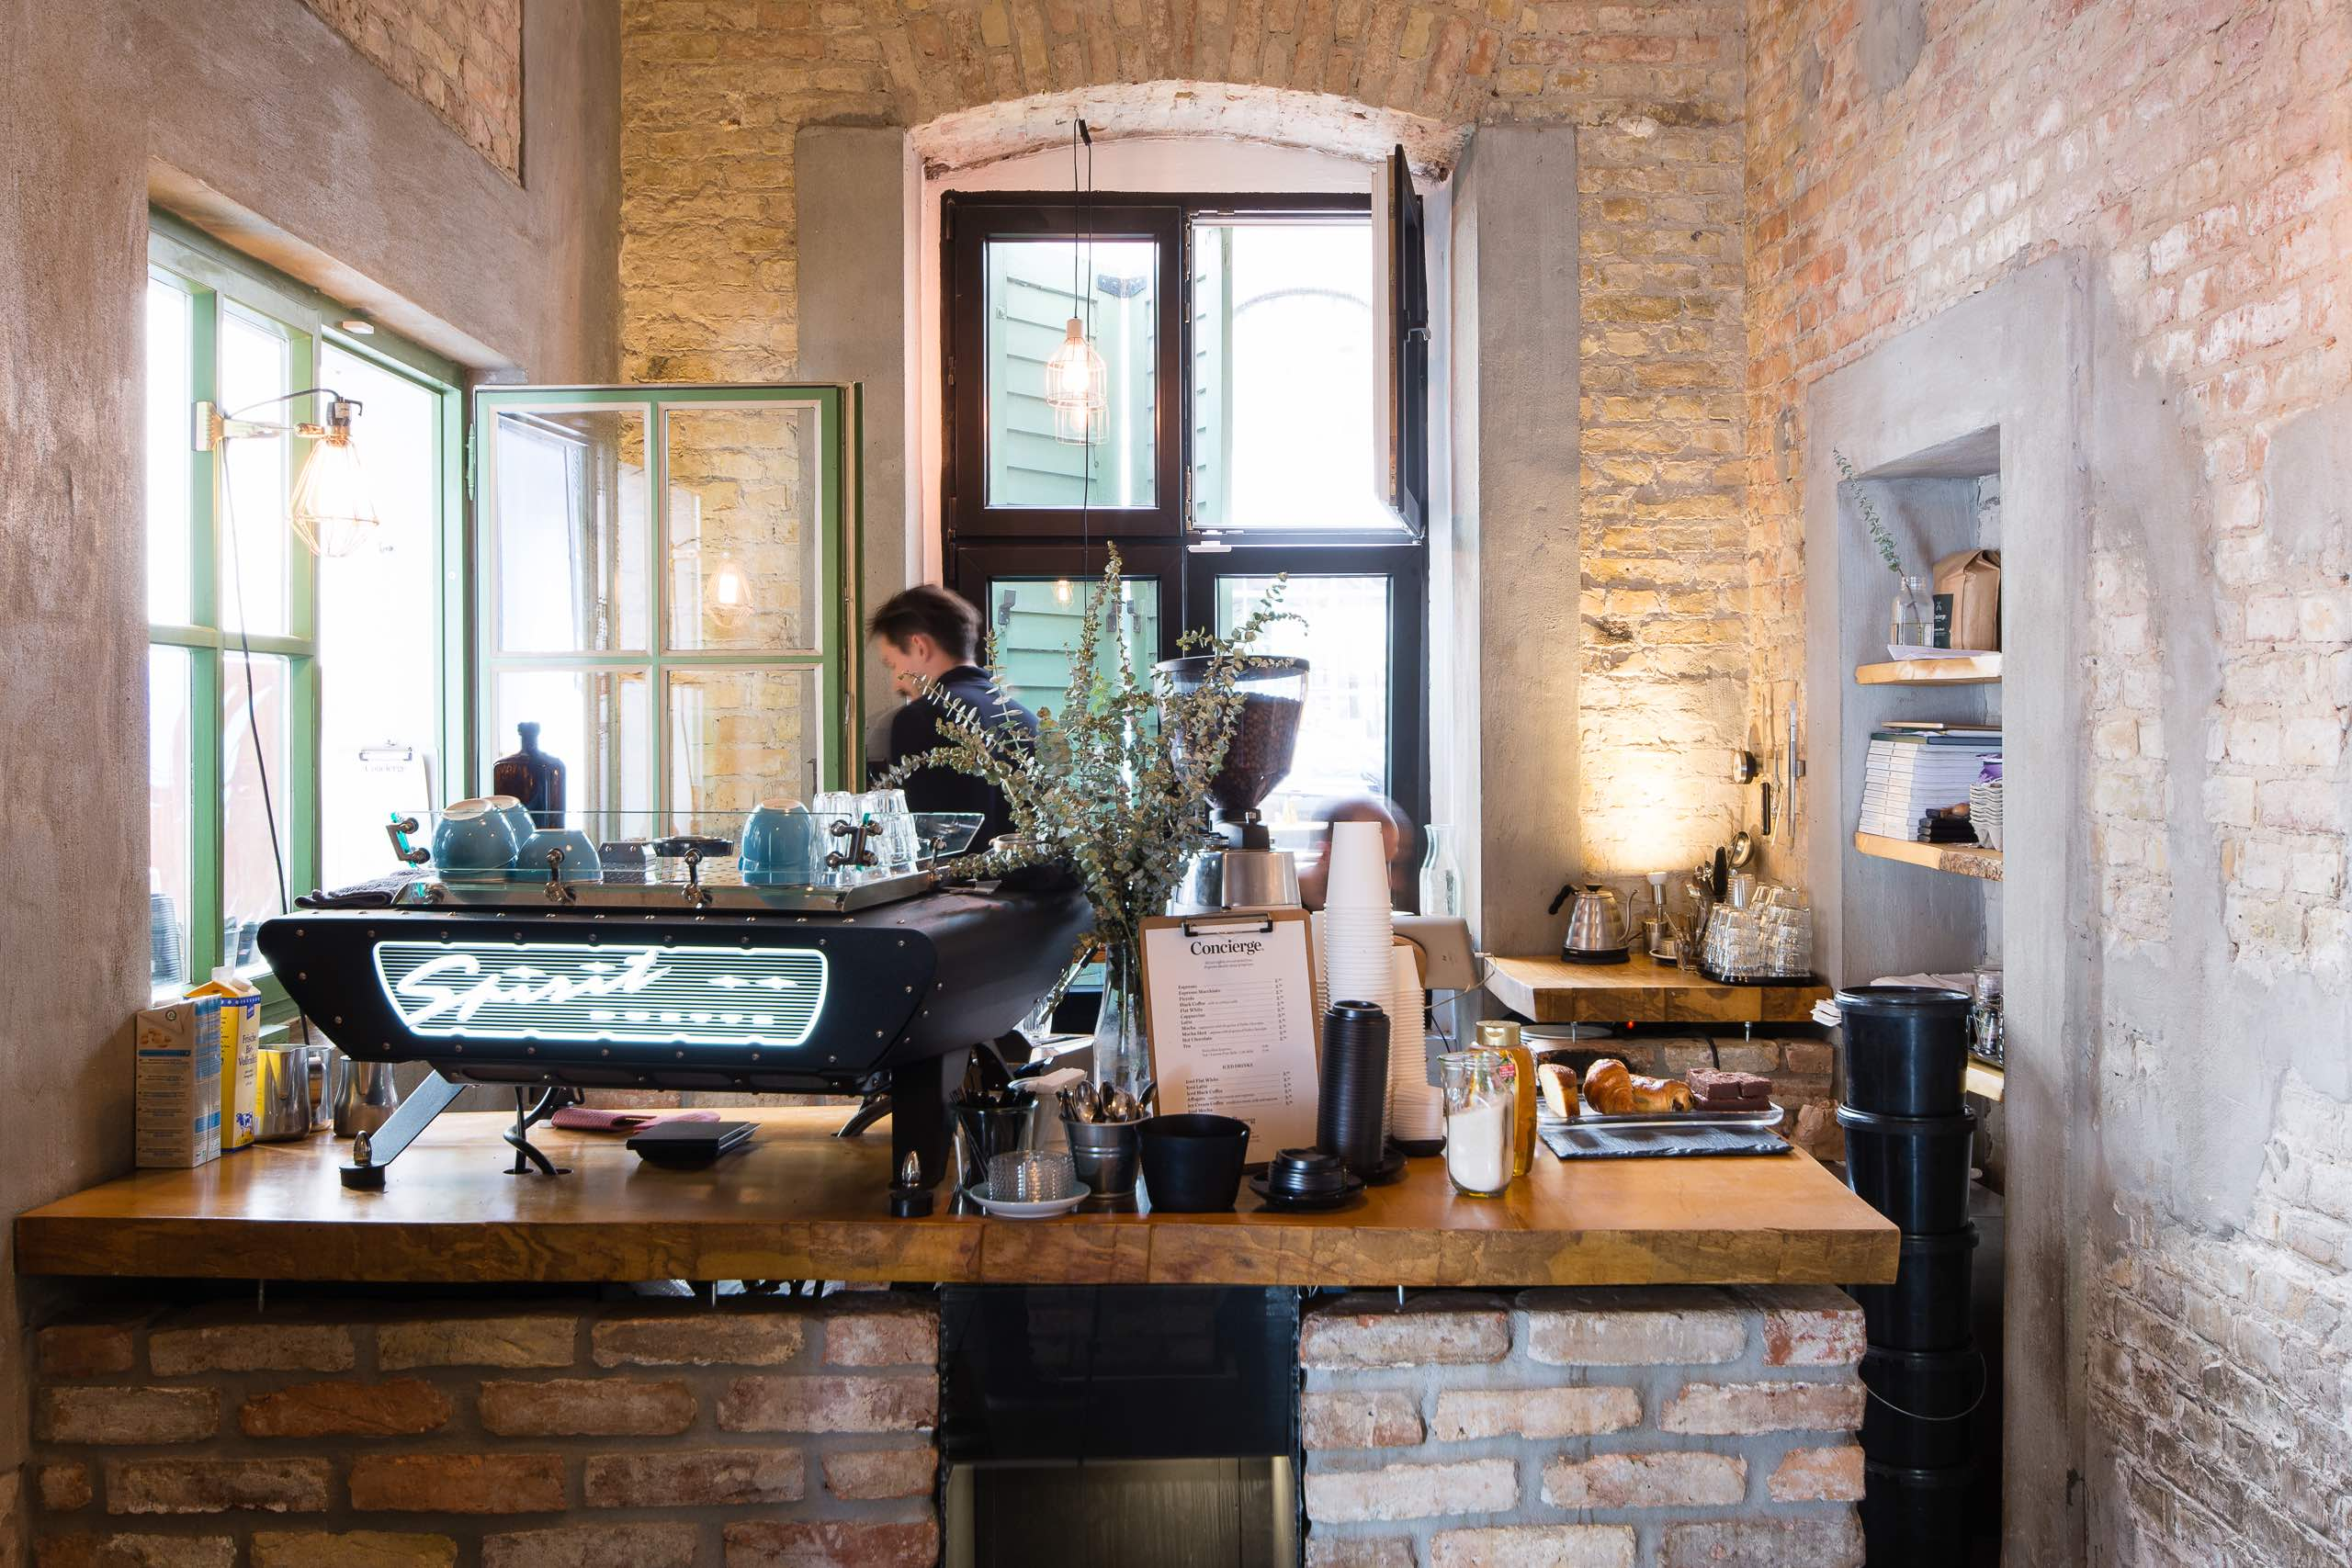 Concierge Coffee Berlin